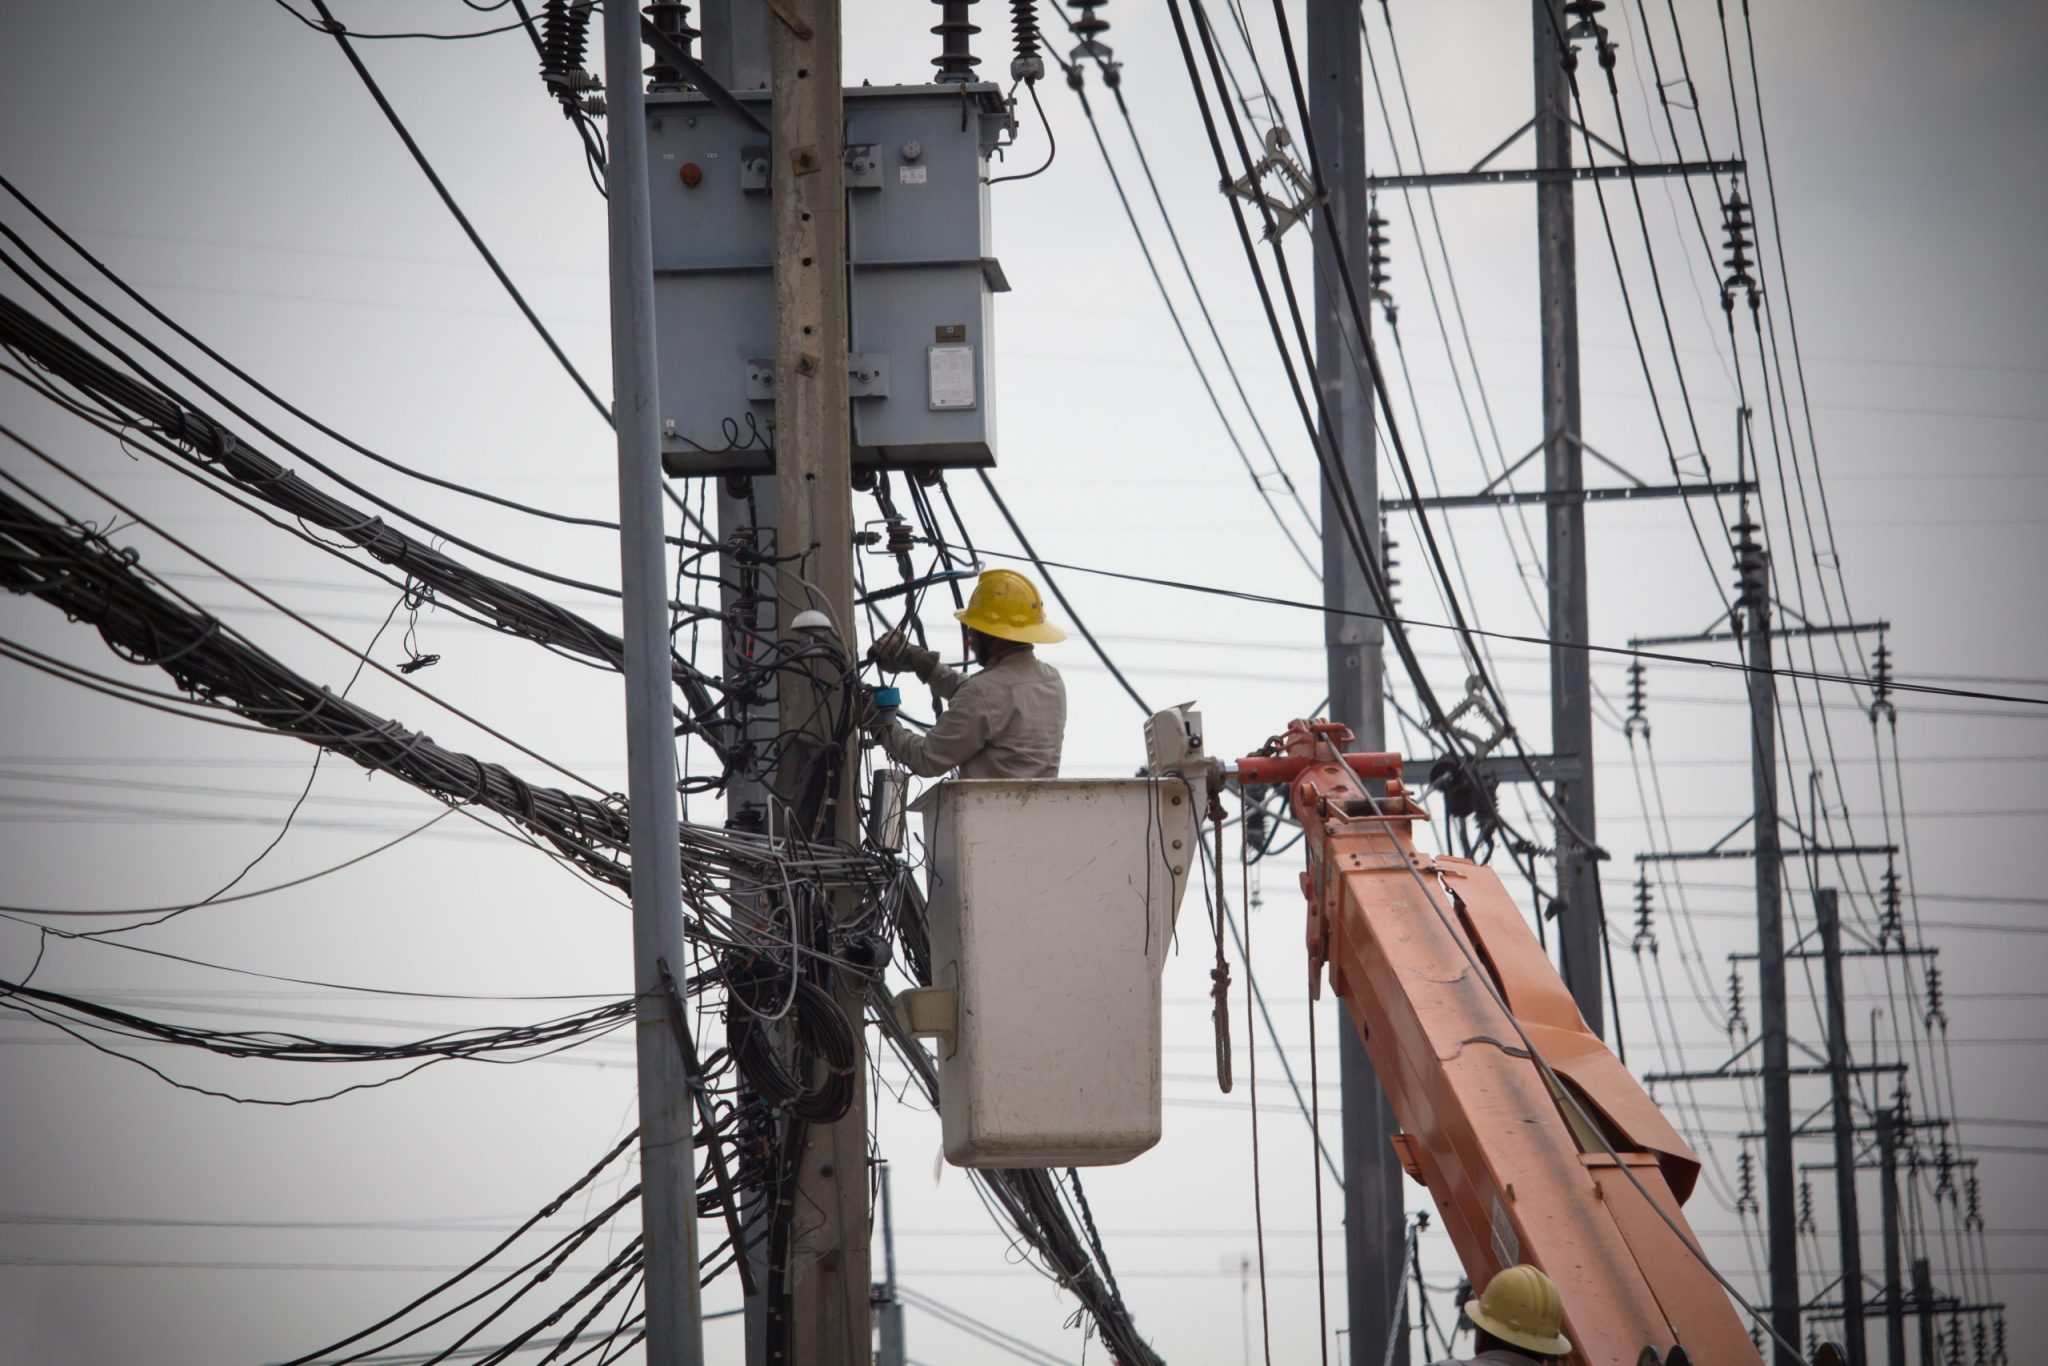 echnician checking fixing broken electric wire on pole. Electricity power utility worker in crane truck bucket fixes high voltage power transmission line.